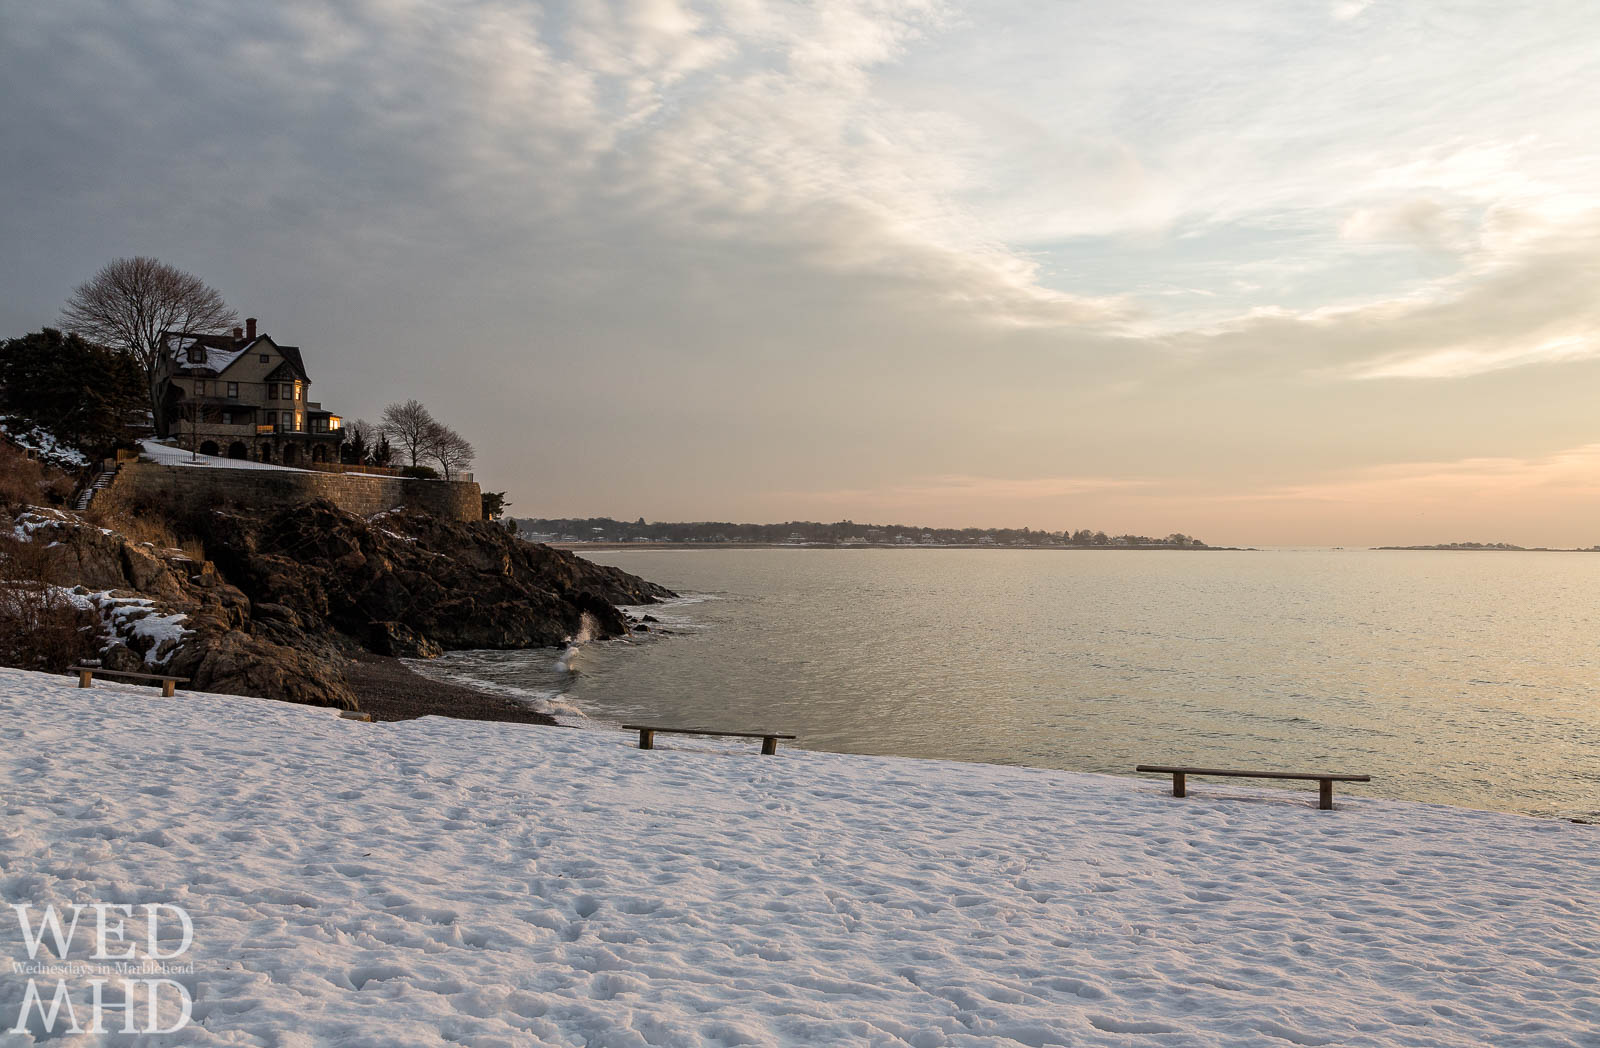 A view of Greystone beach after a snow storm cleared overnight results in a beautiful dawn with soft light of sunrise